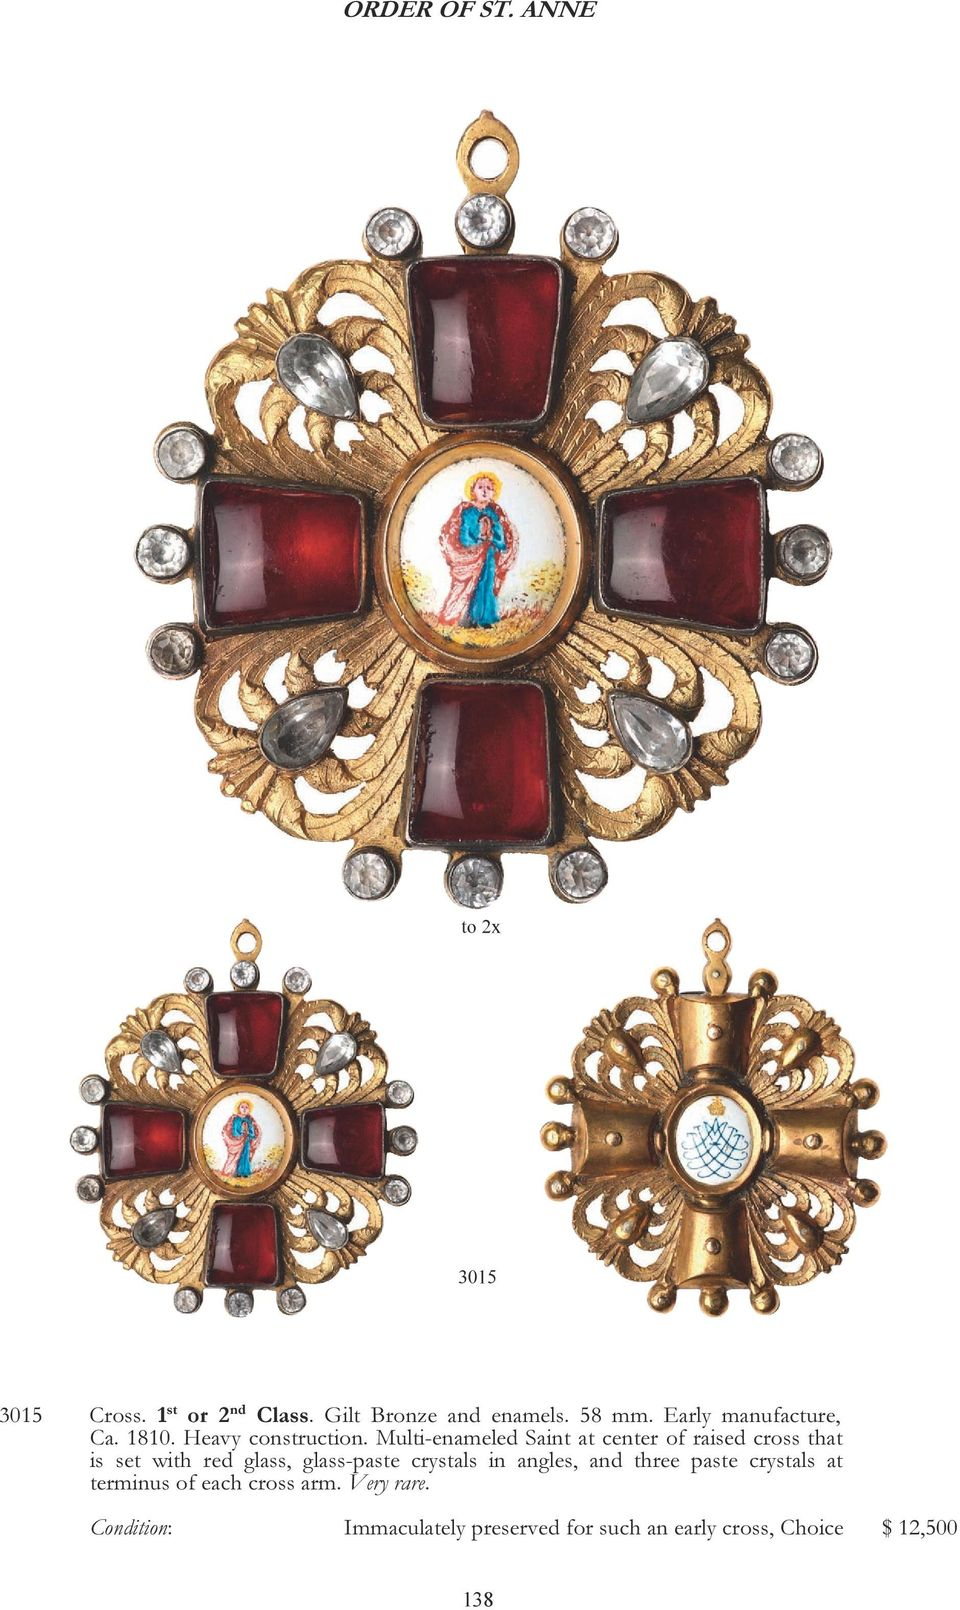 Multi-enameled Saint at center of raised cross that is set with red glass, glass-paste crystals in